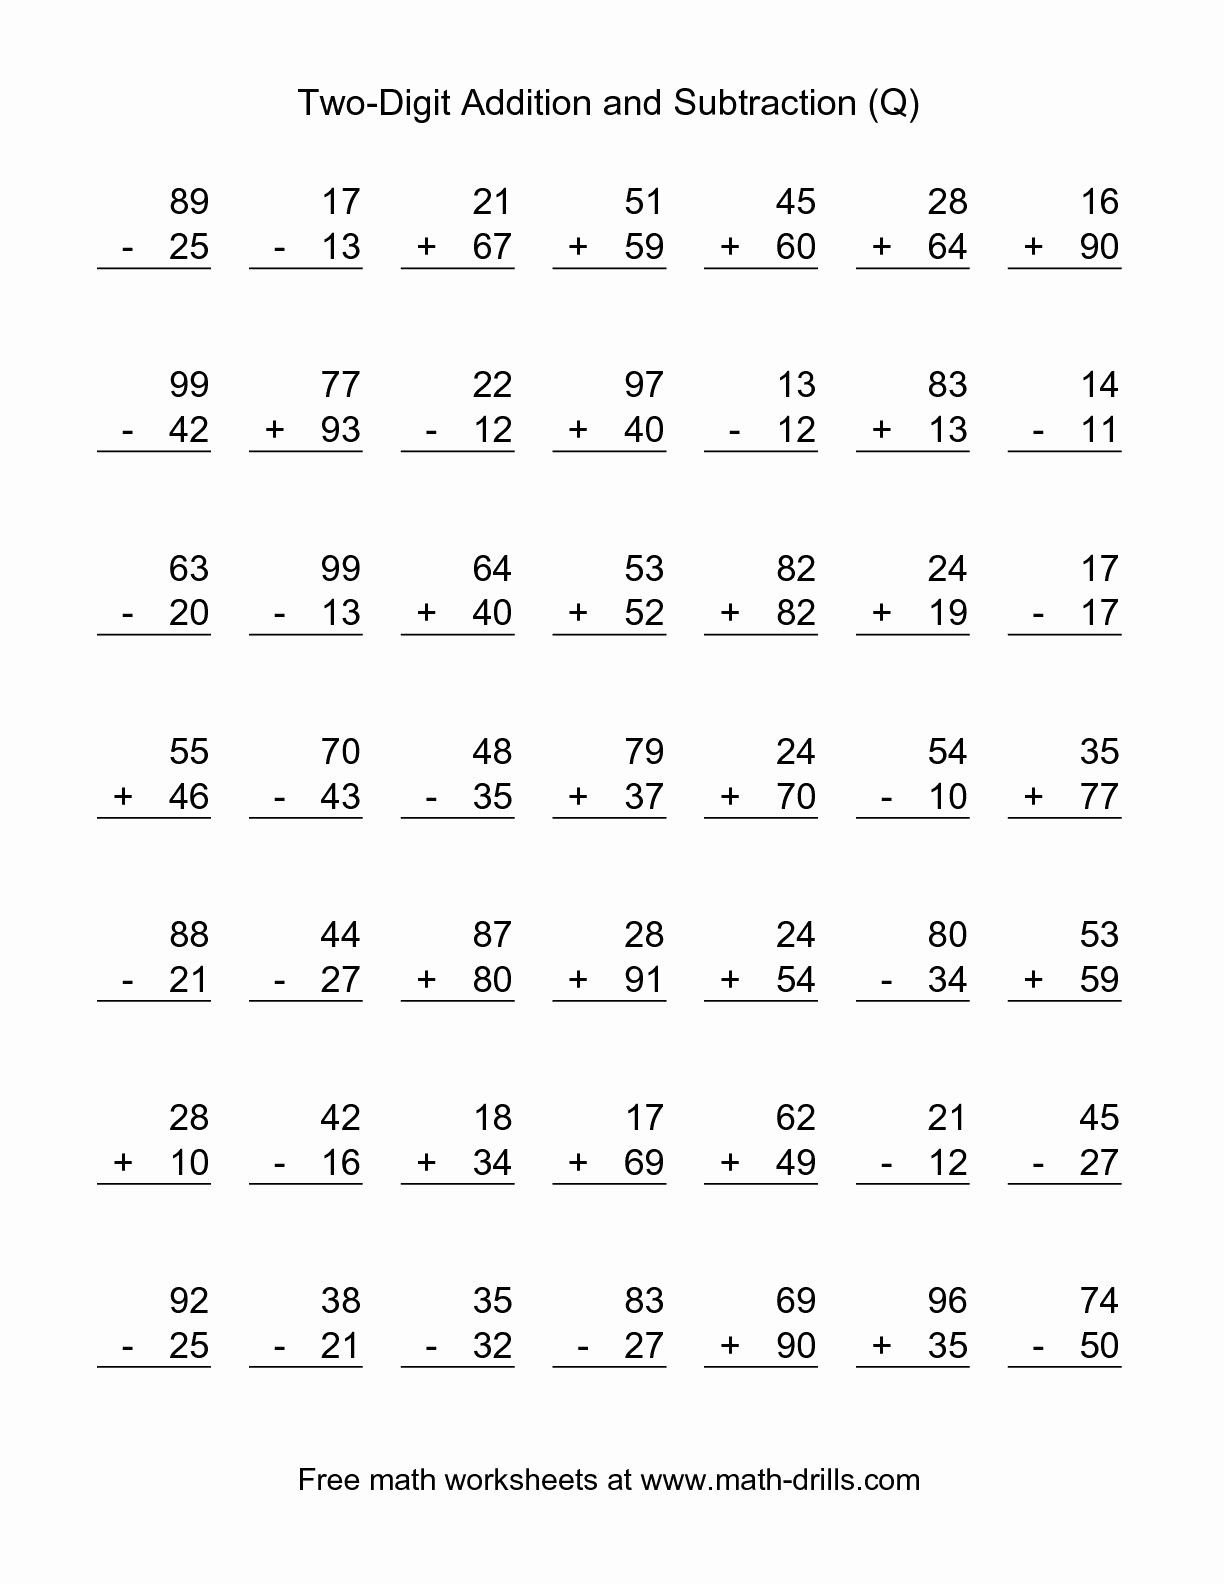 Printable Second Grade Math Worksheets To Free Download - Math - Free Printable Second Grade Worksheets